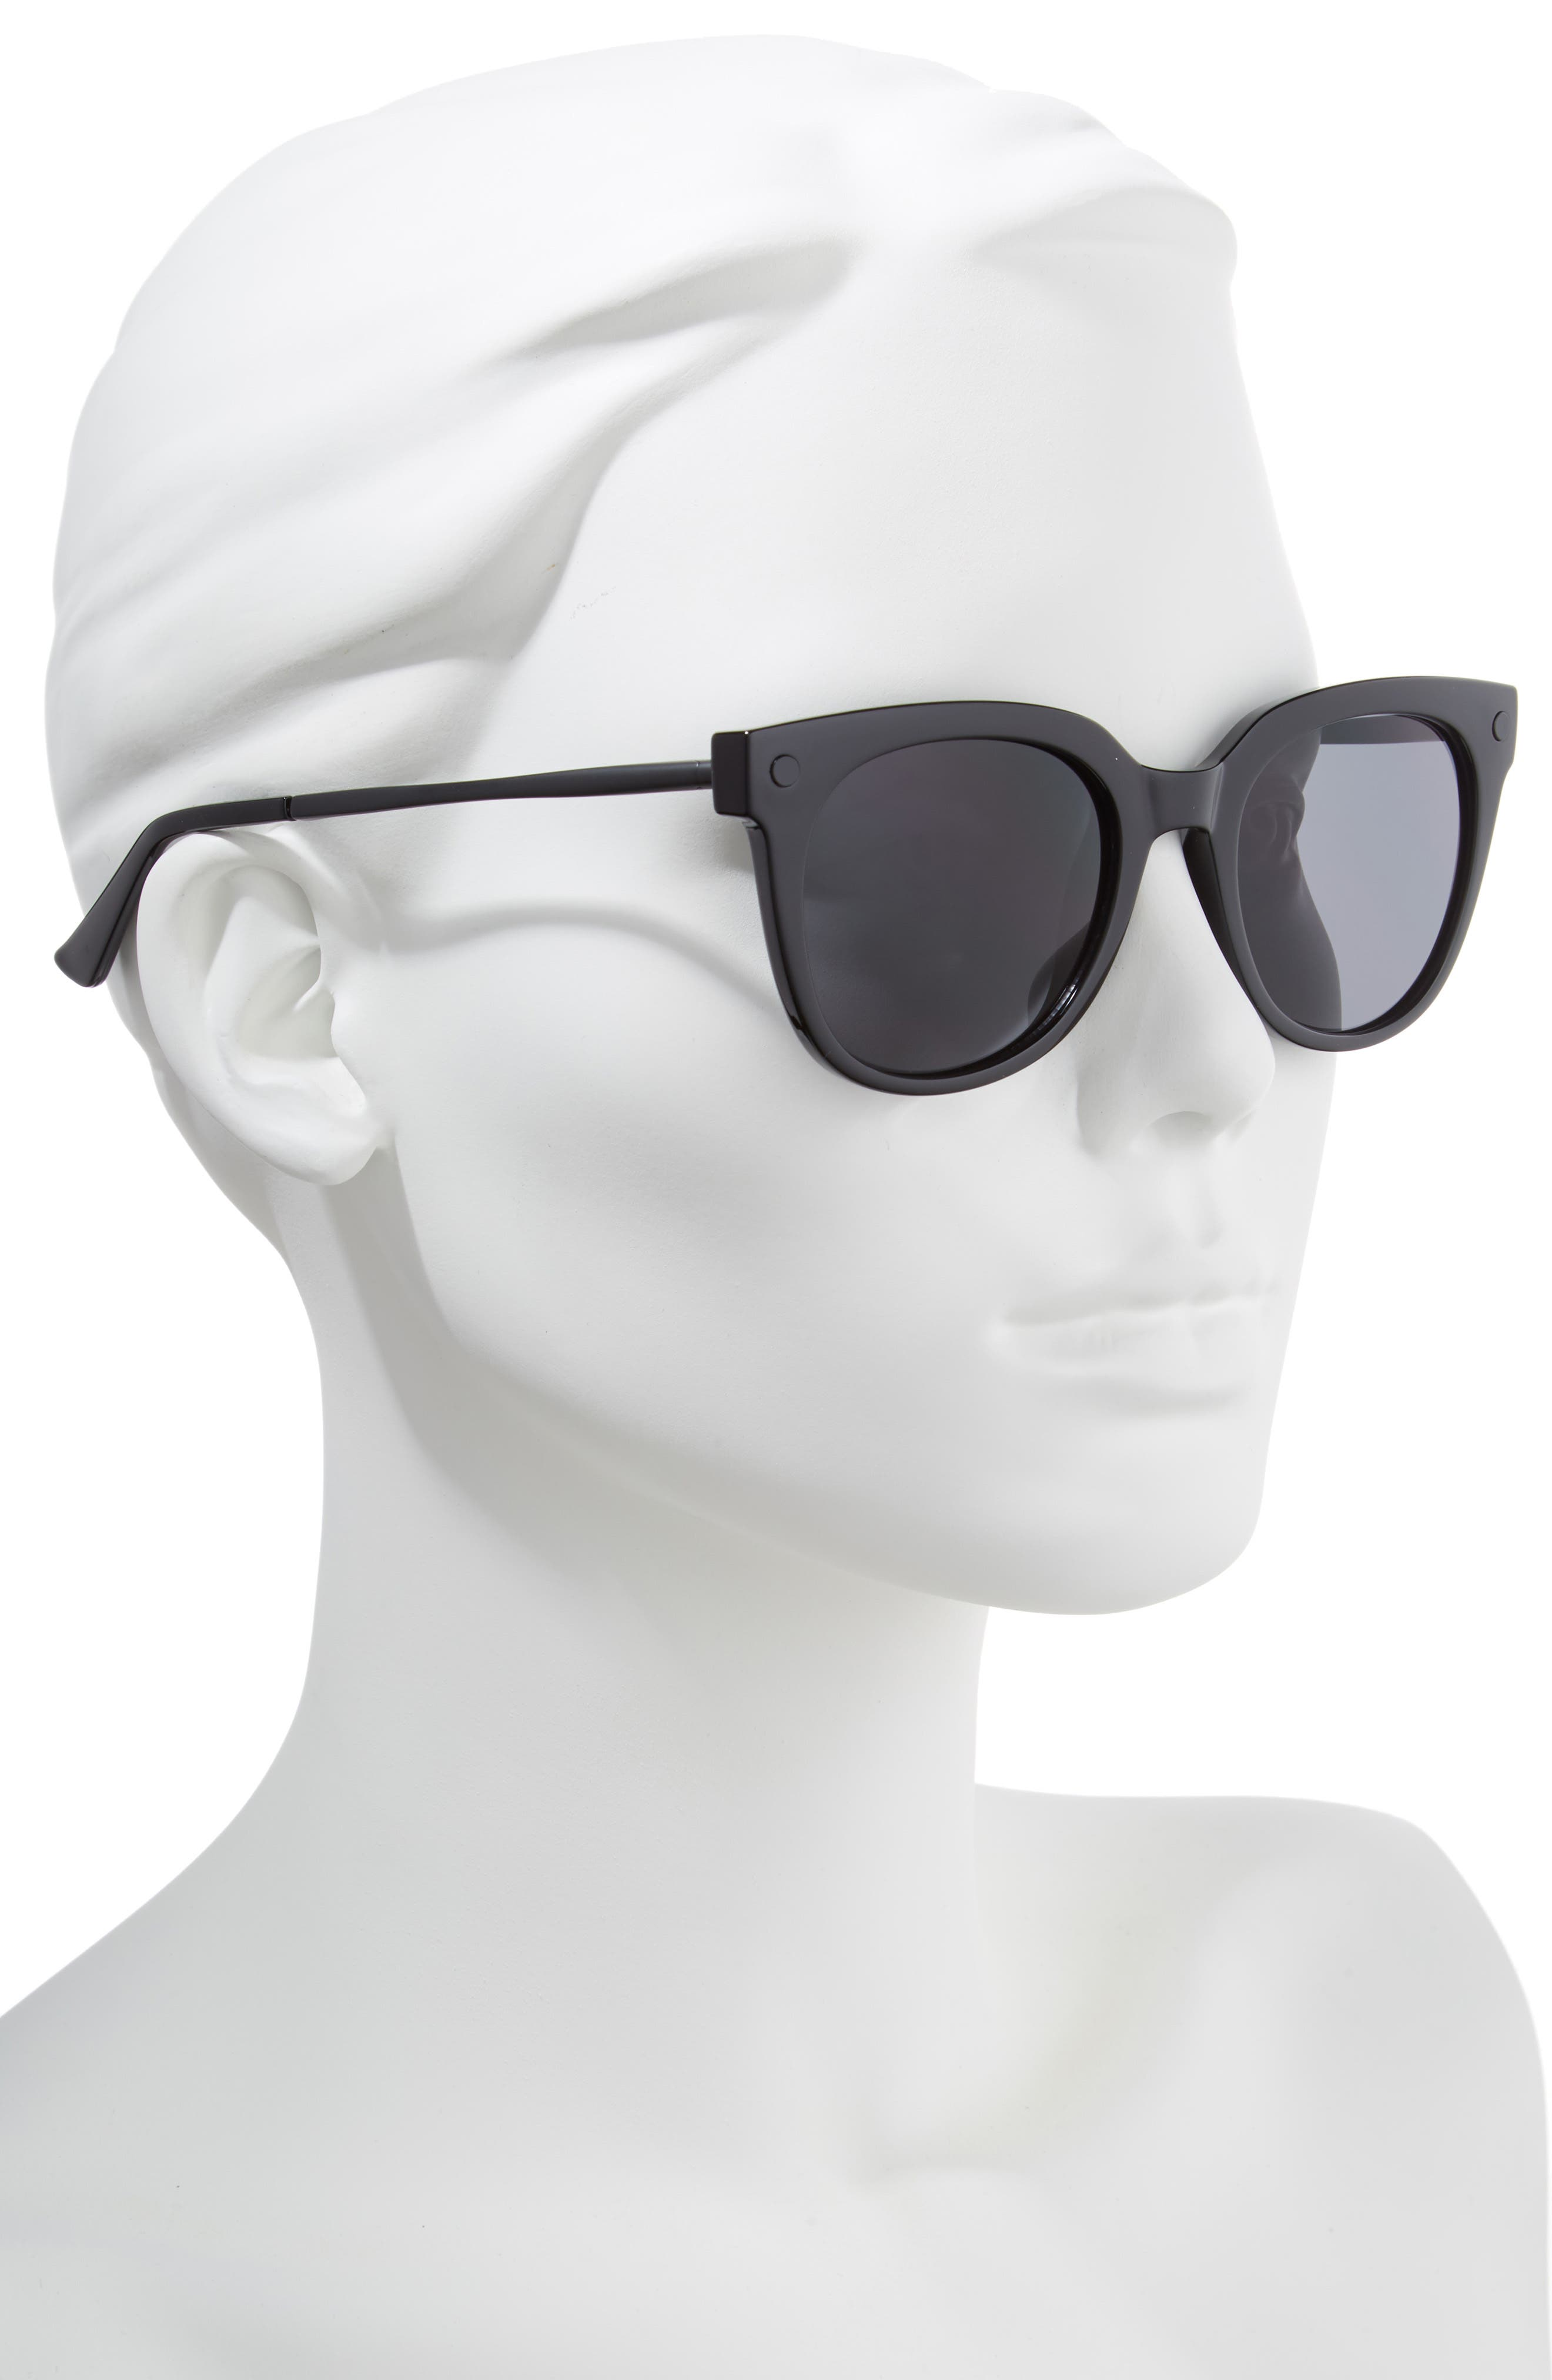 Malabar 52mm Sunglasses,                             Alternate thumbnail 2, color,                             001